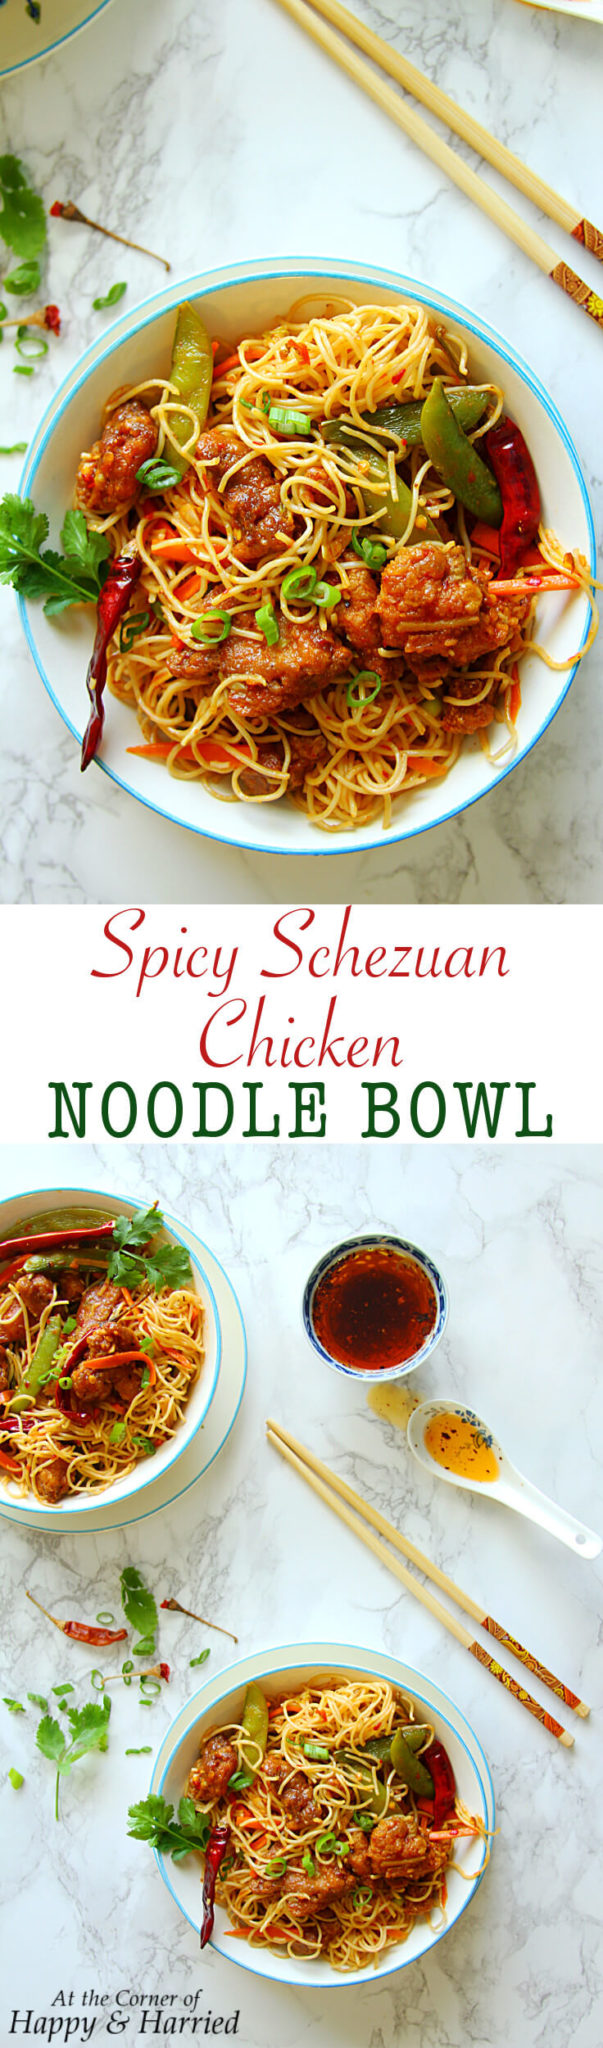 Spicy Szechuan Chicken Noodle Bowl - Happy&Harried